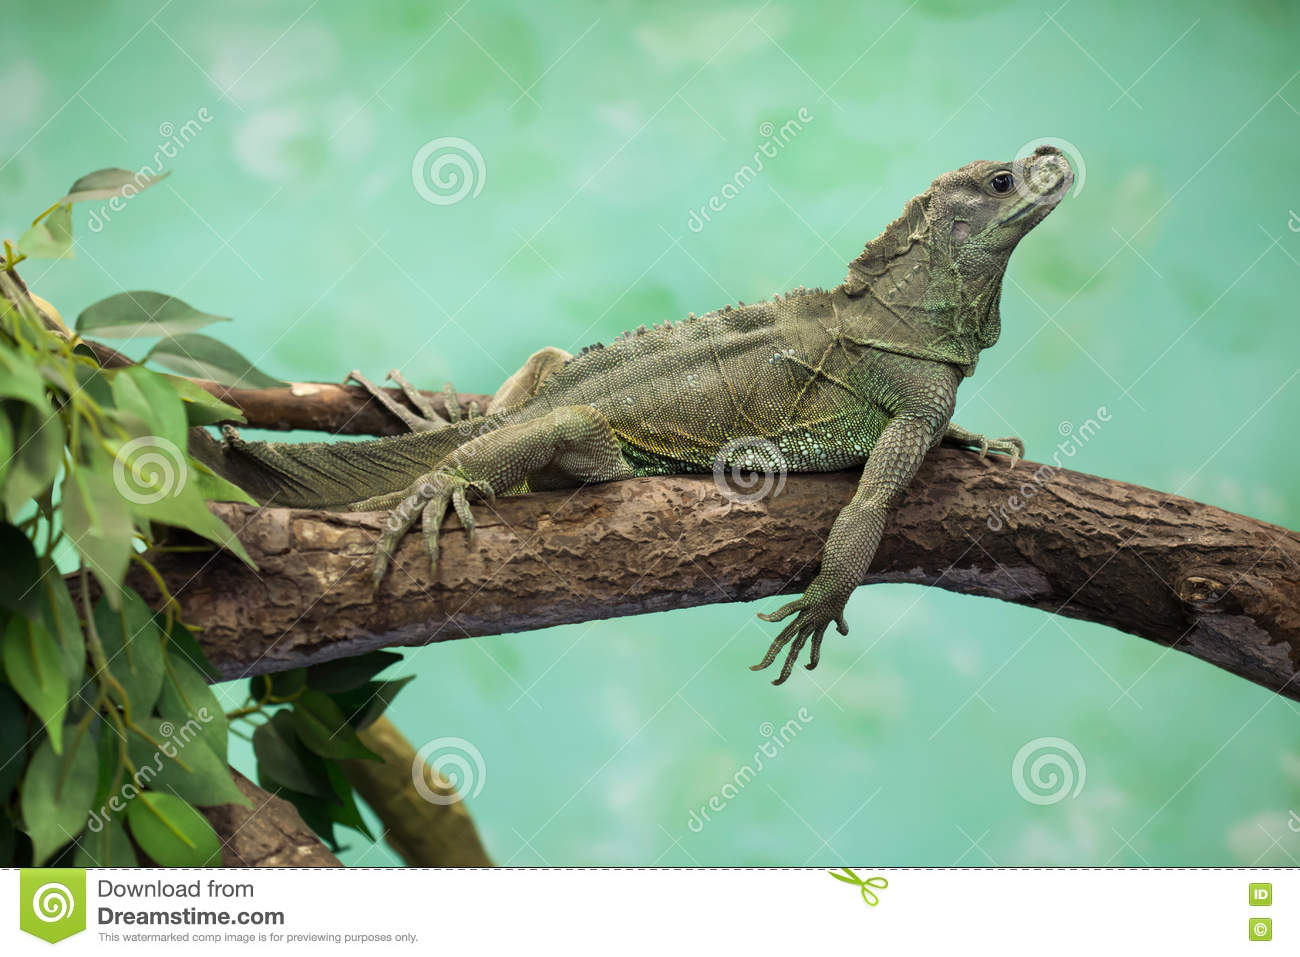 Sailfin Lizard clipart #8, Download drawings